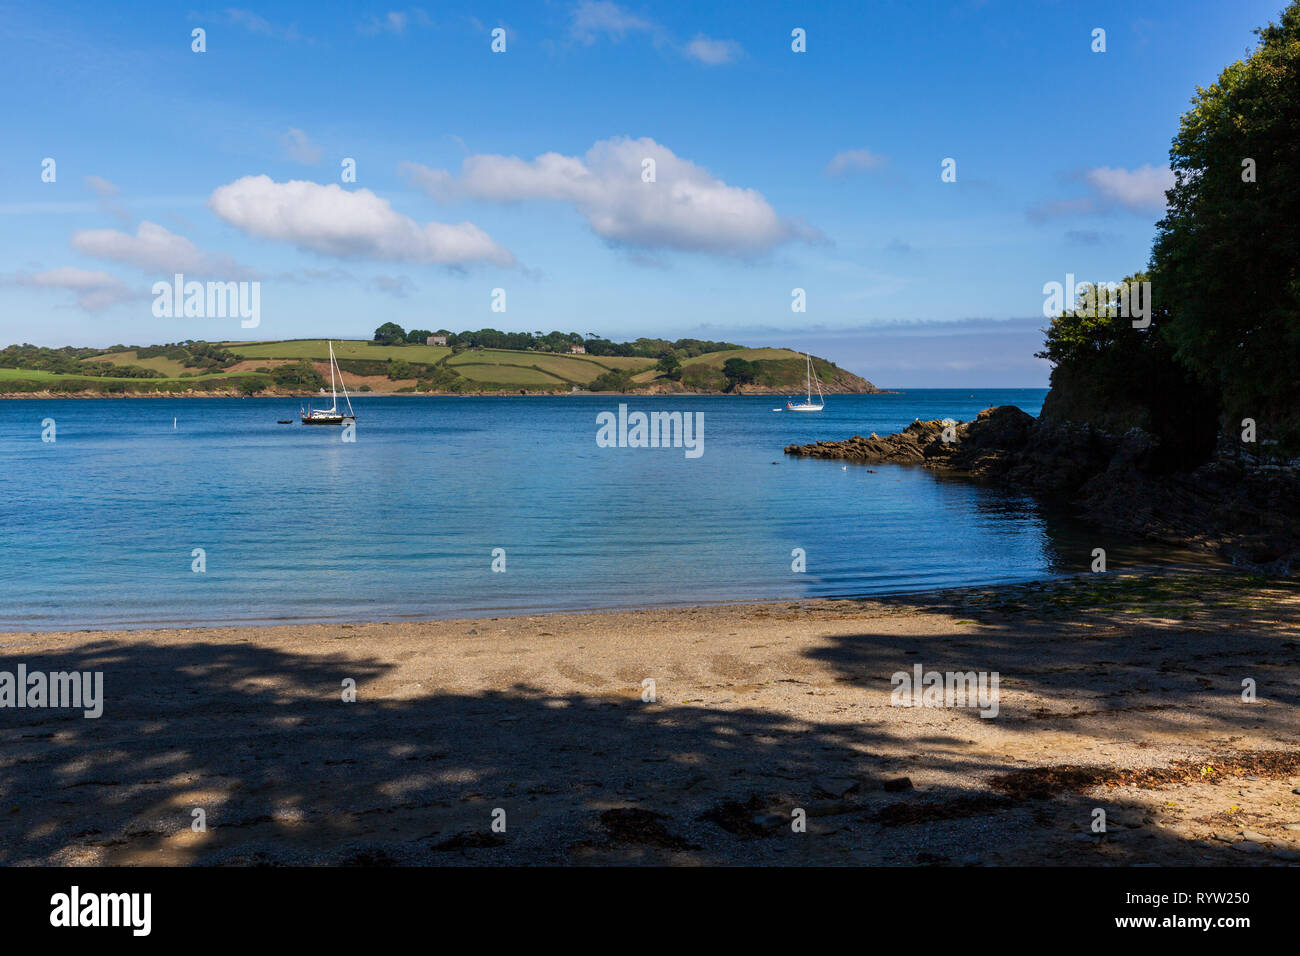 Secluded Cove on the Helford River Estuary in Cornwall, England, UK - Stock Image